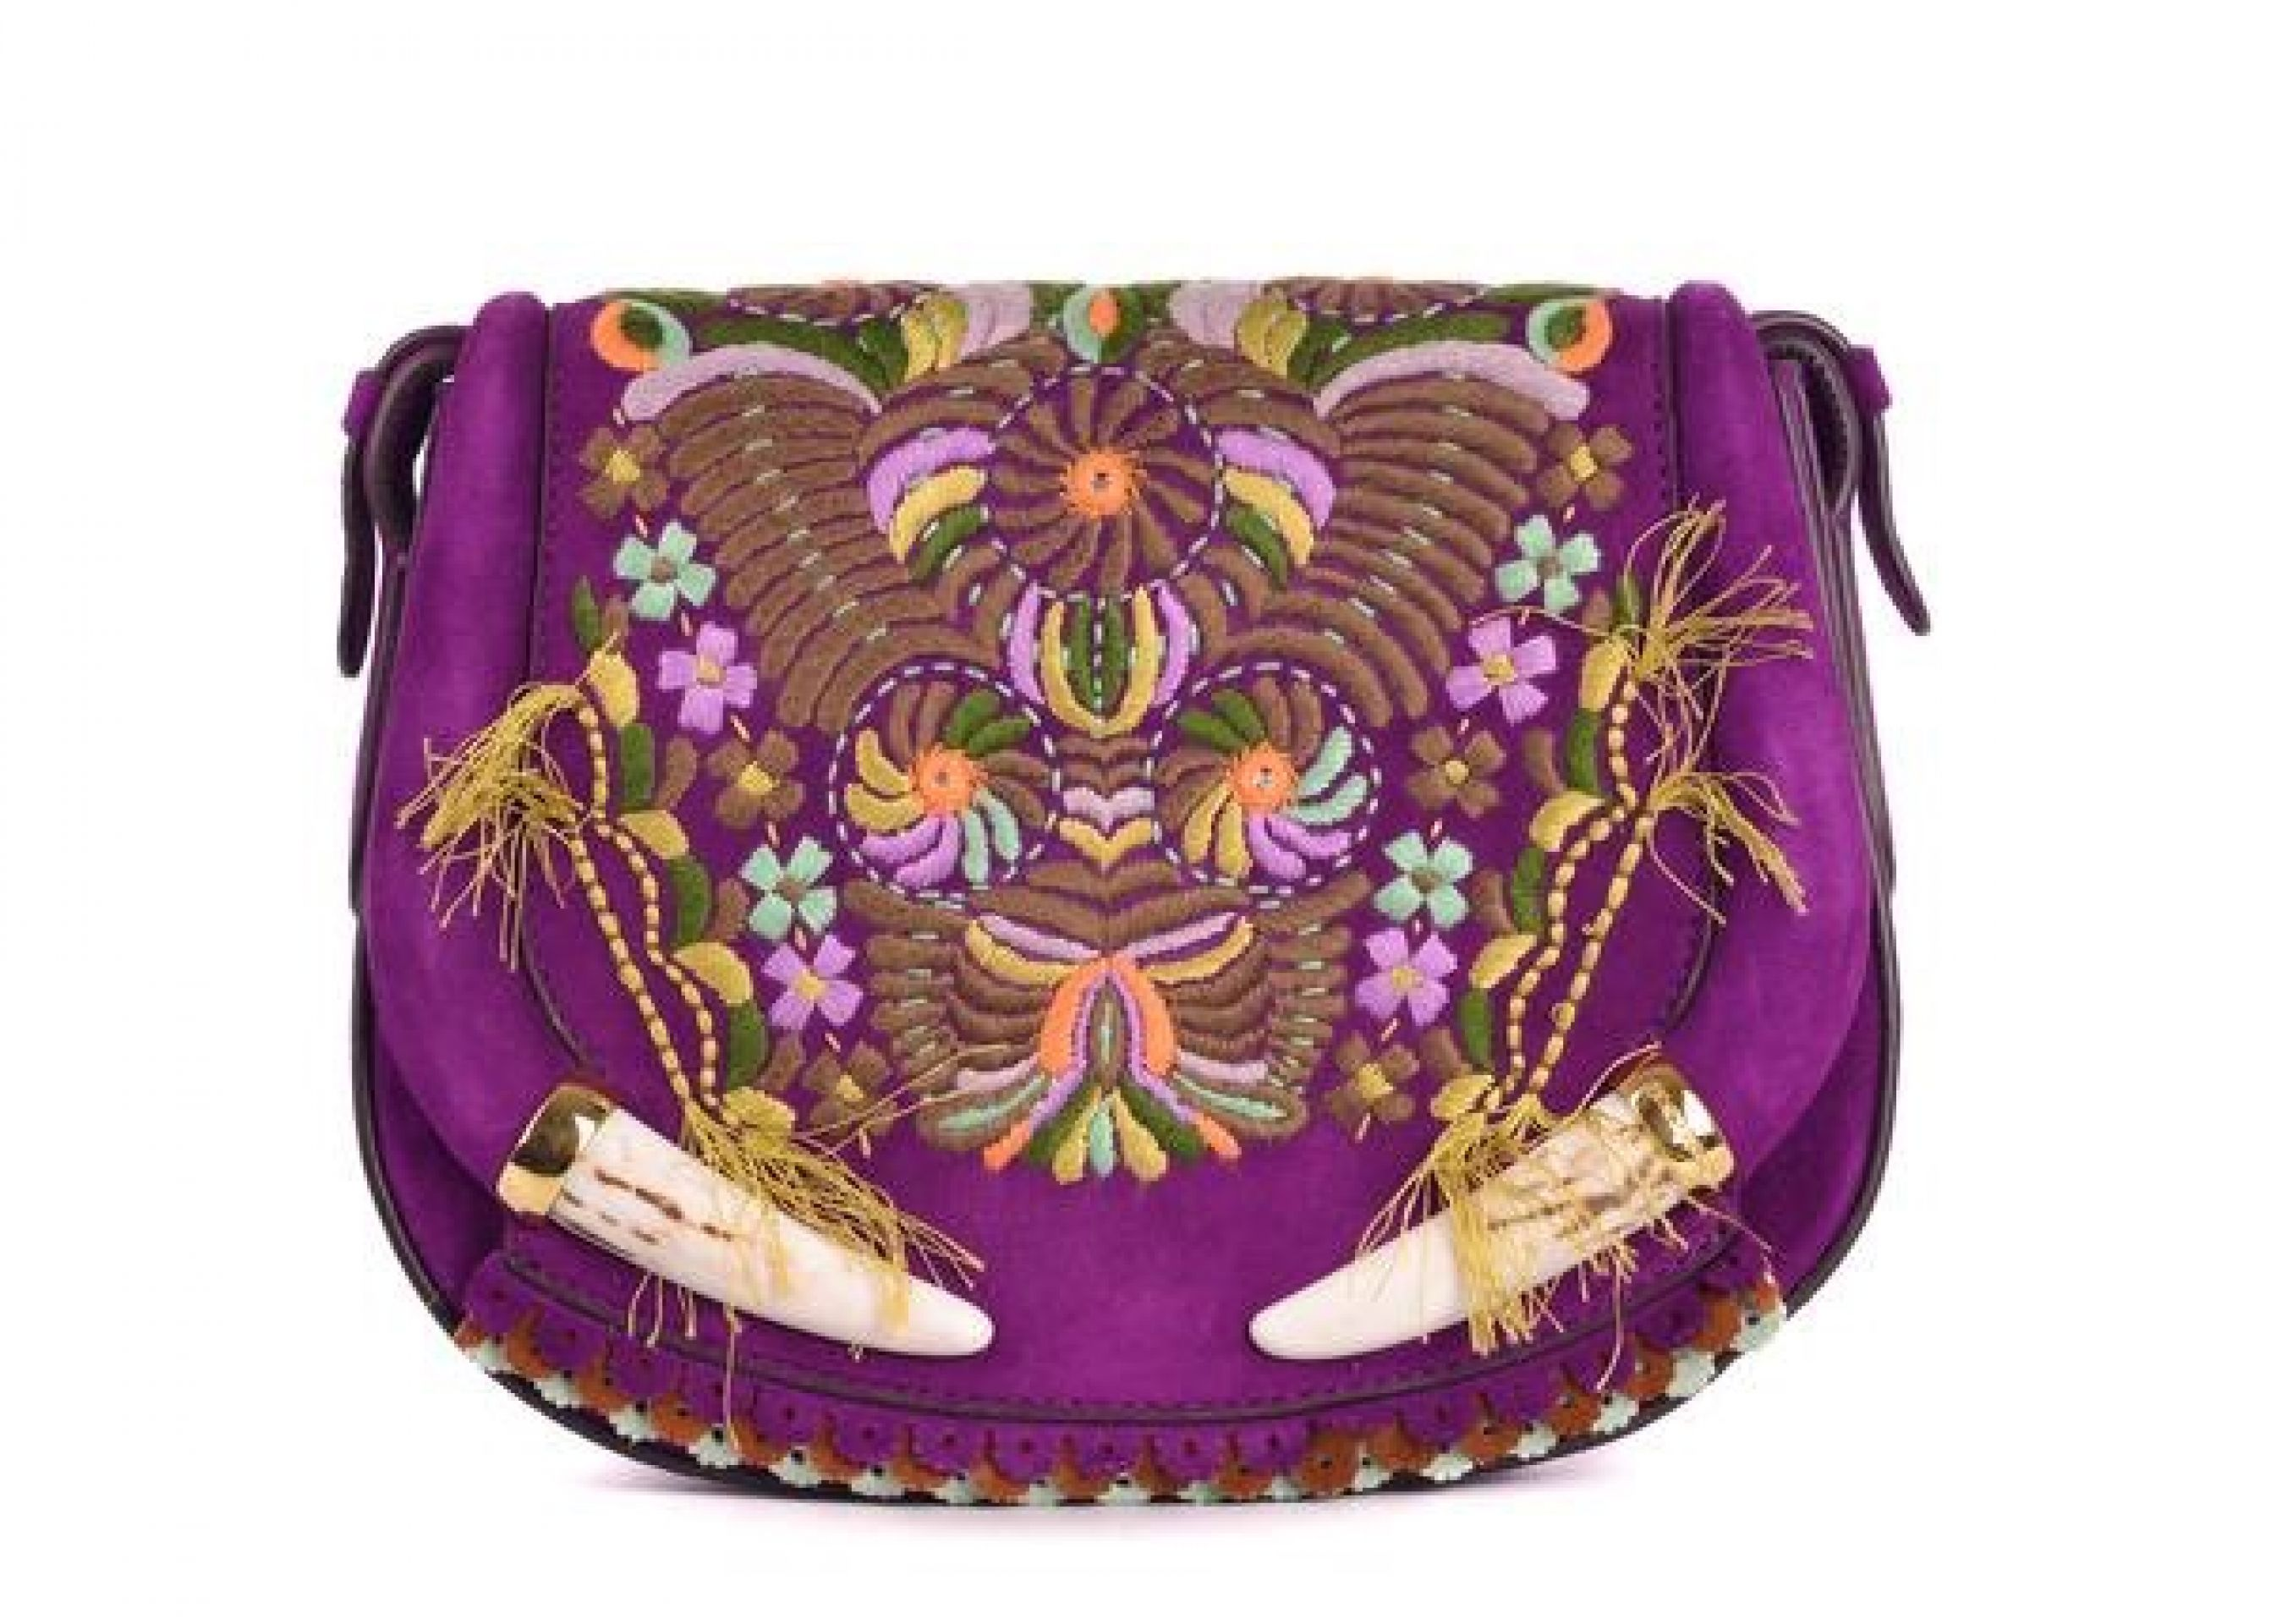 ROBERTO CAVALLI WOMEN PURPLE SUEDE EMBROIDERED FLORAL TUSK SHOULDER BAG